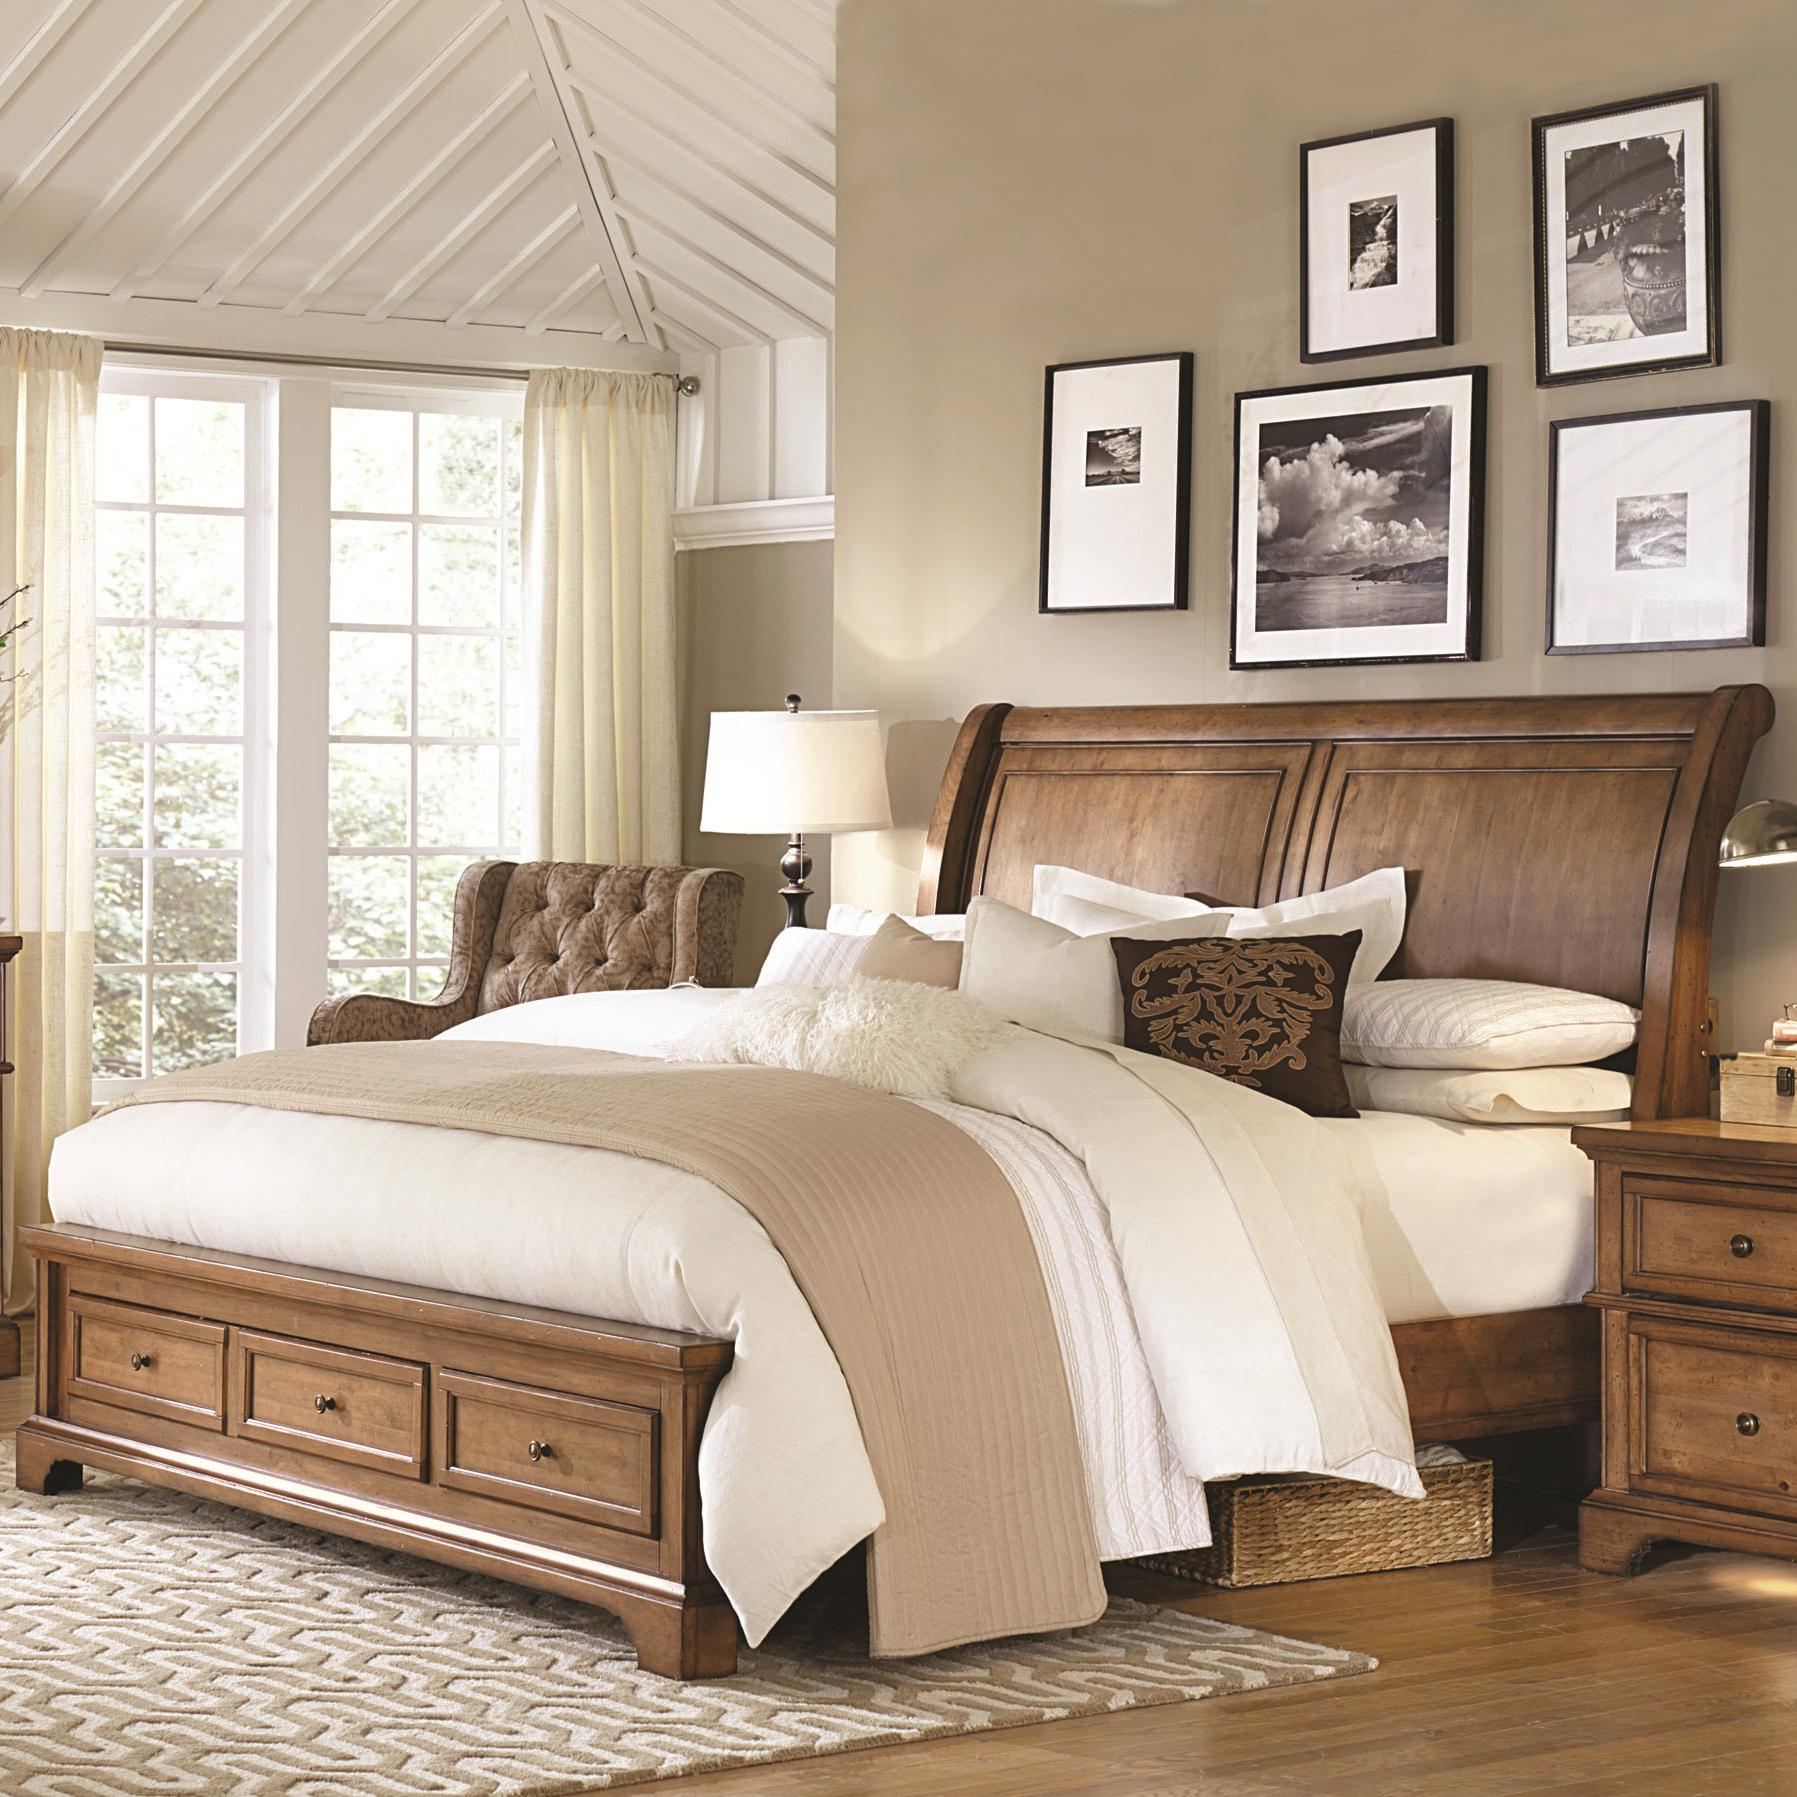 Alder Creek King Sleigh Storage Bed by Aspenhome at Fashion Furniture